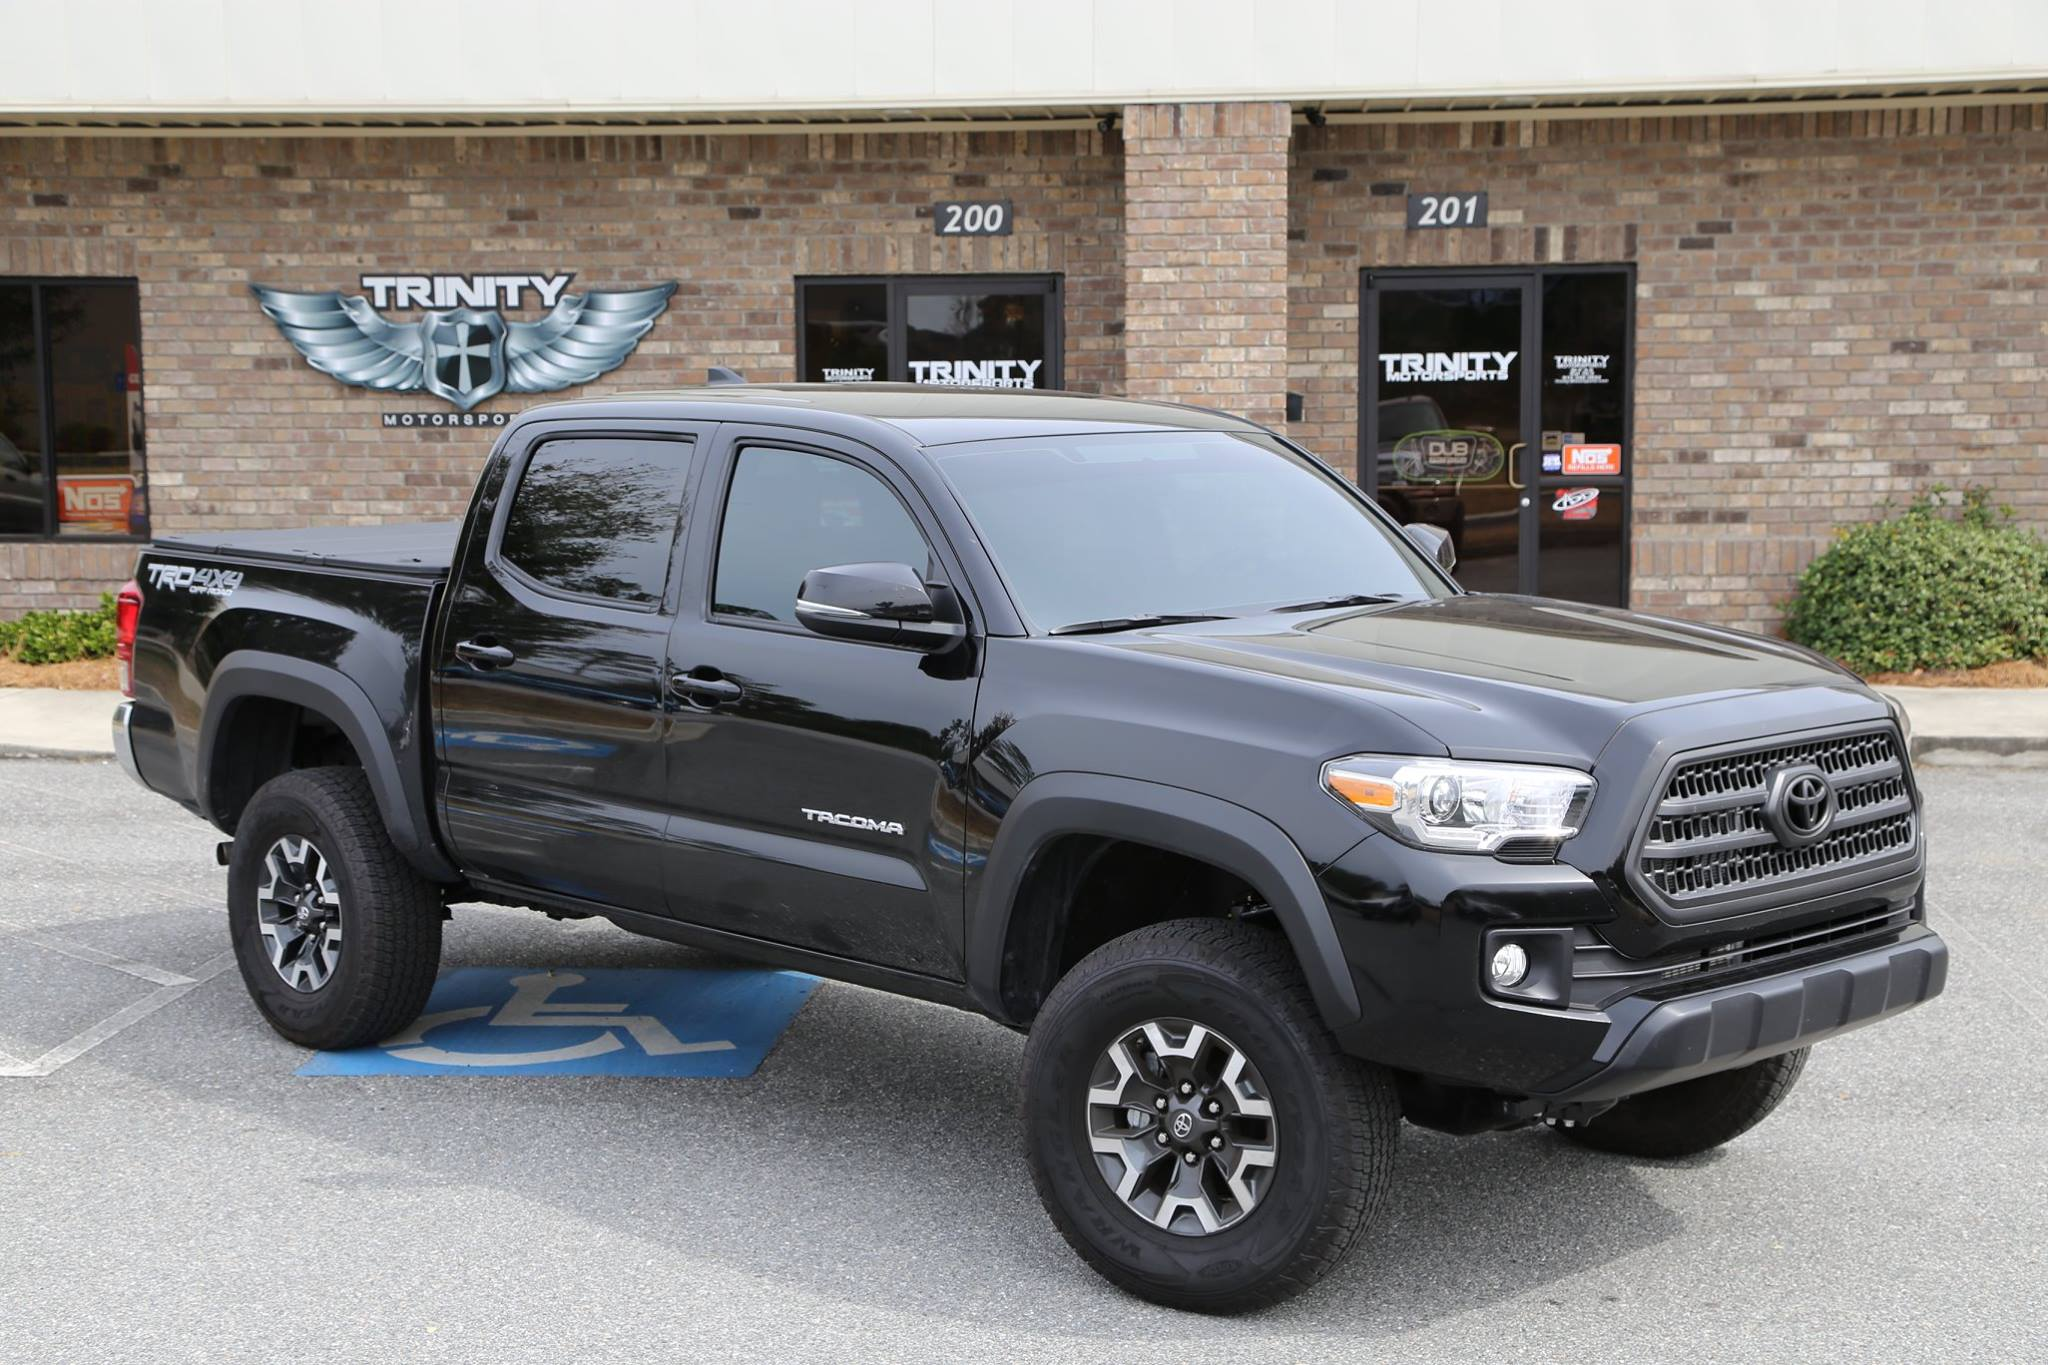 Shocks For Ford F250 2016 Toyota Tacoma Lifted on Fuel Vapors - Trinity Motorsports